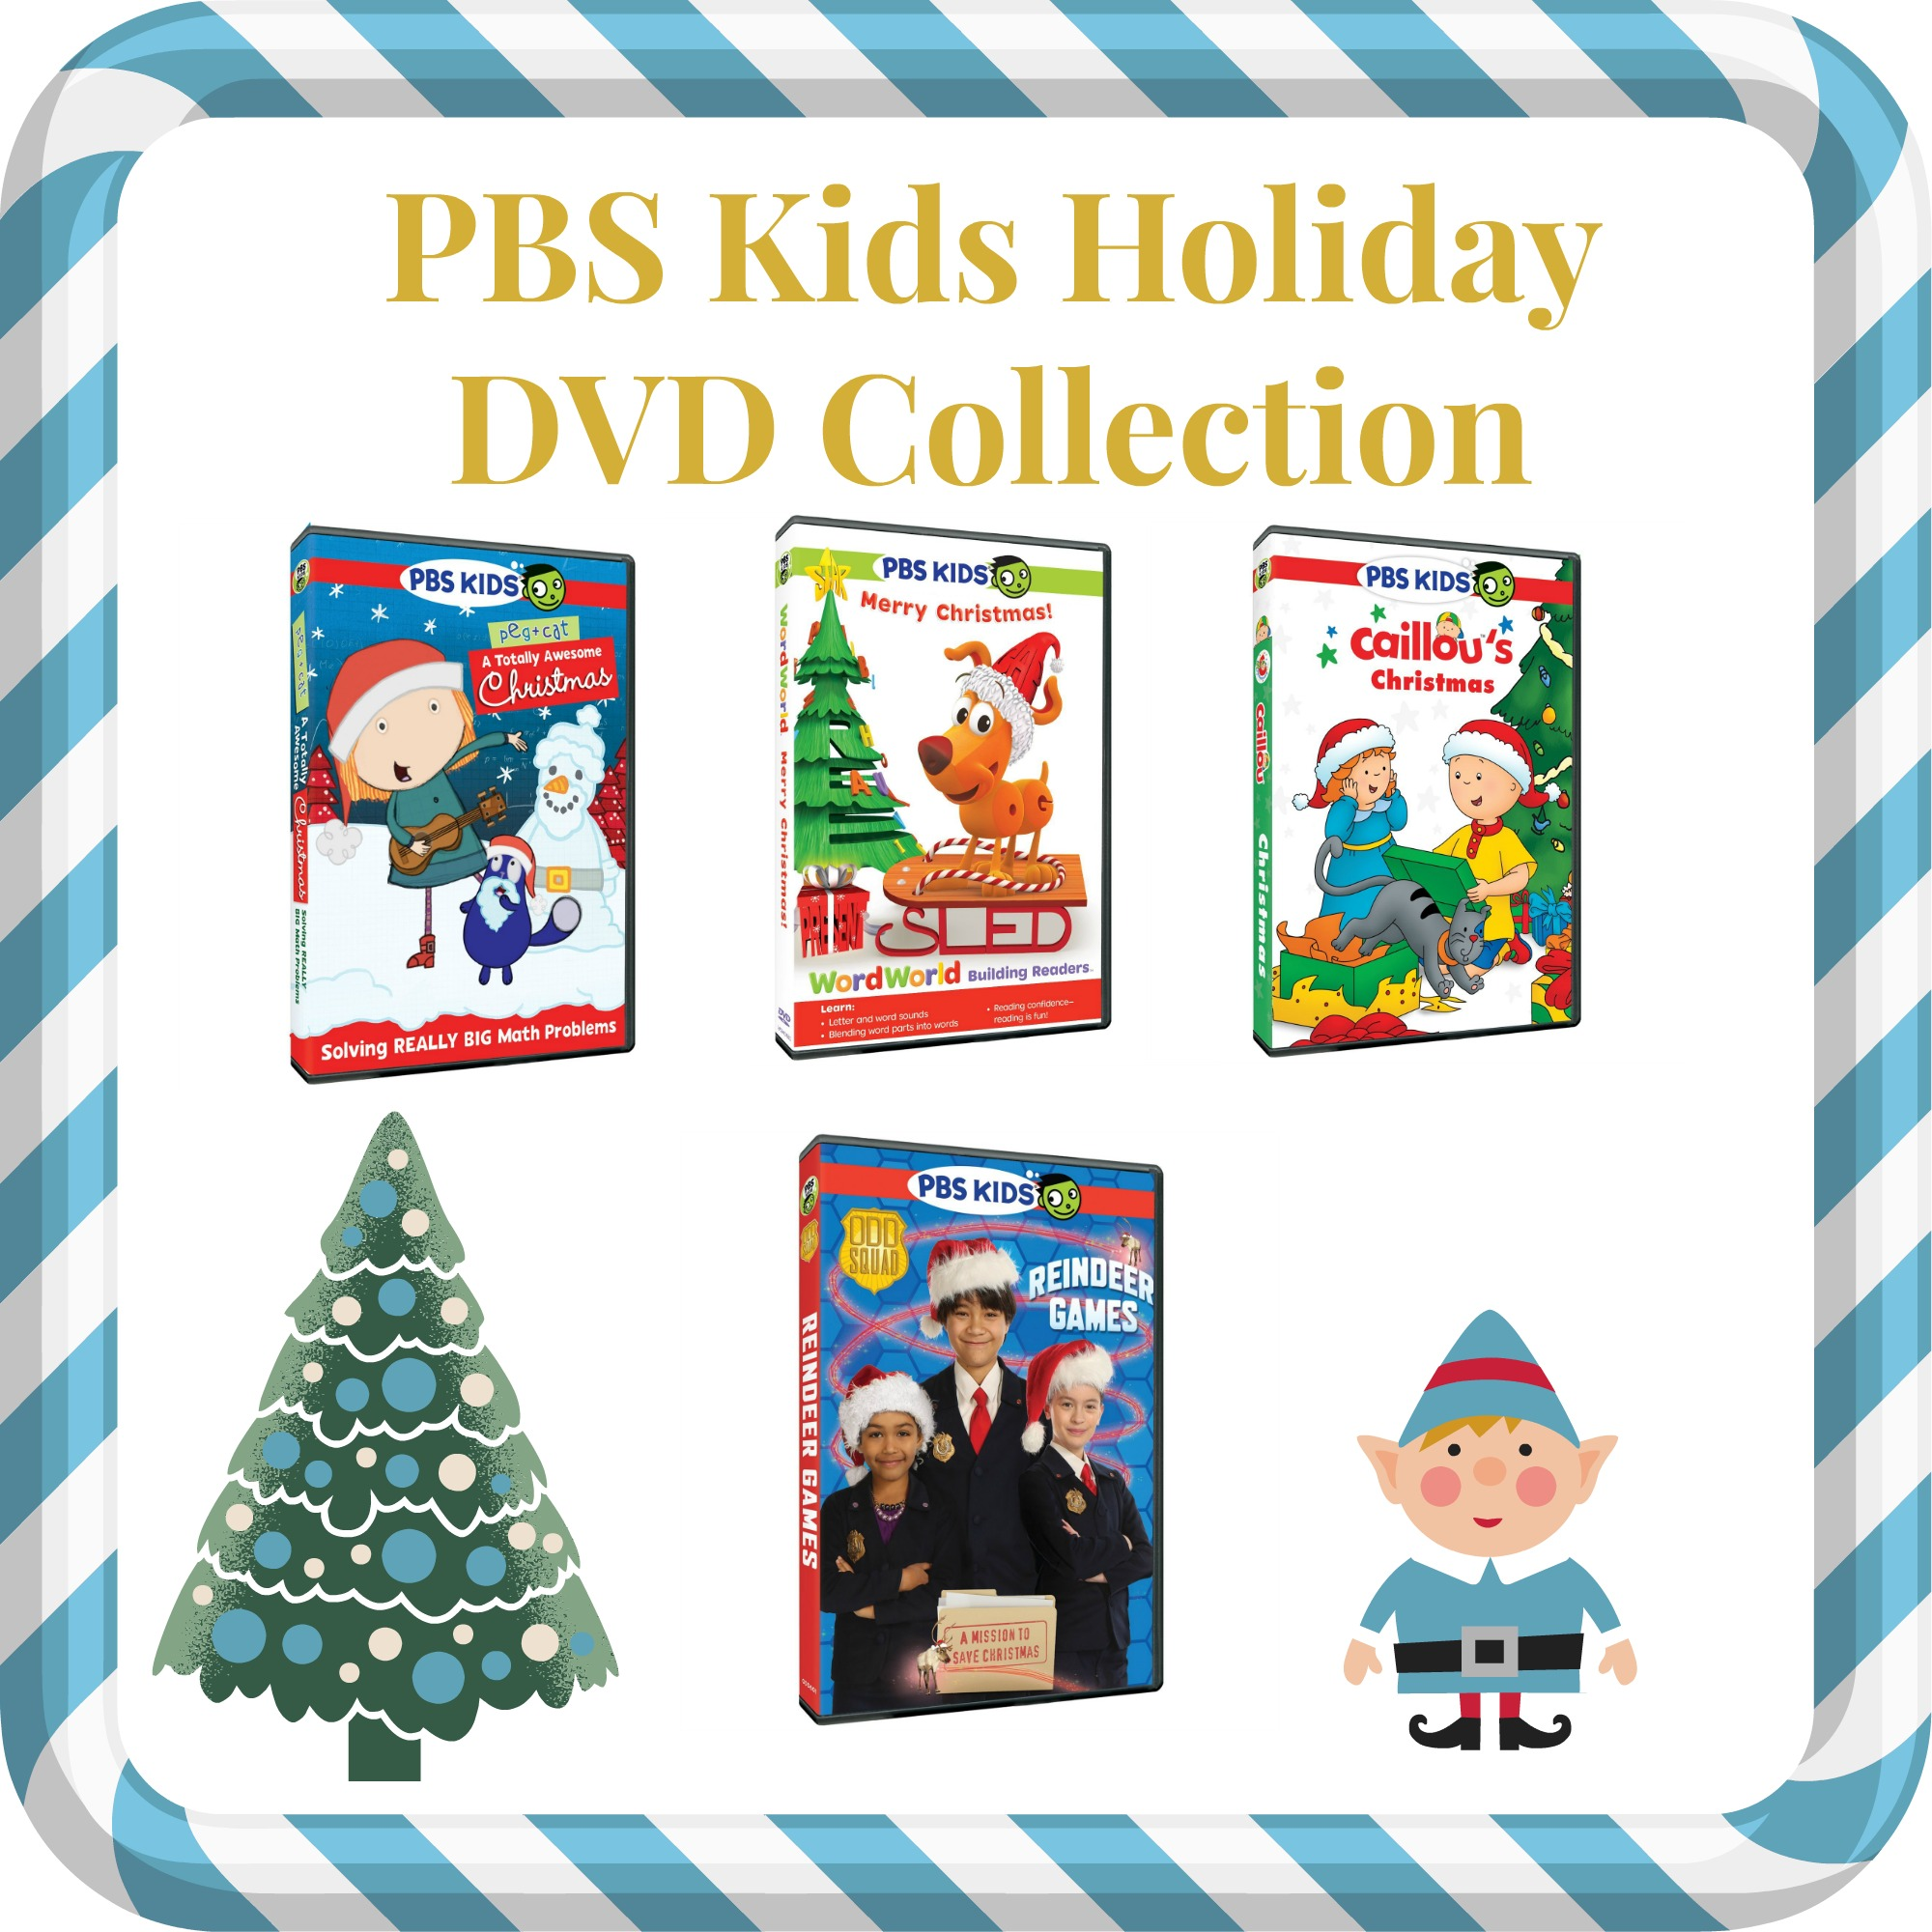 Holiday Fun Awaits In Four NEW PBS Kids DVDs